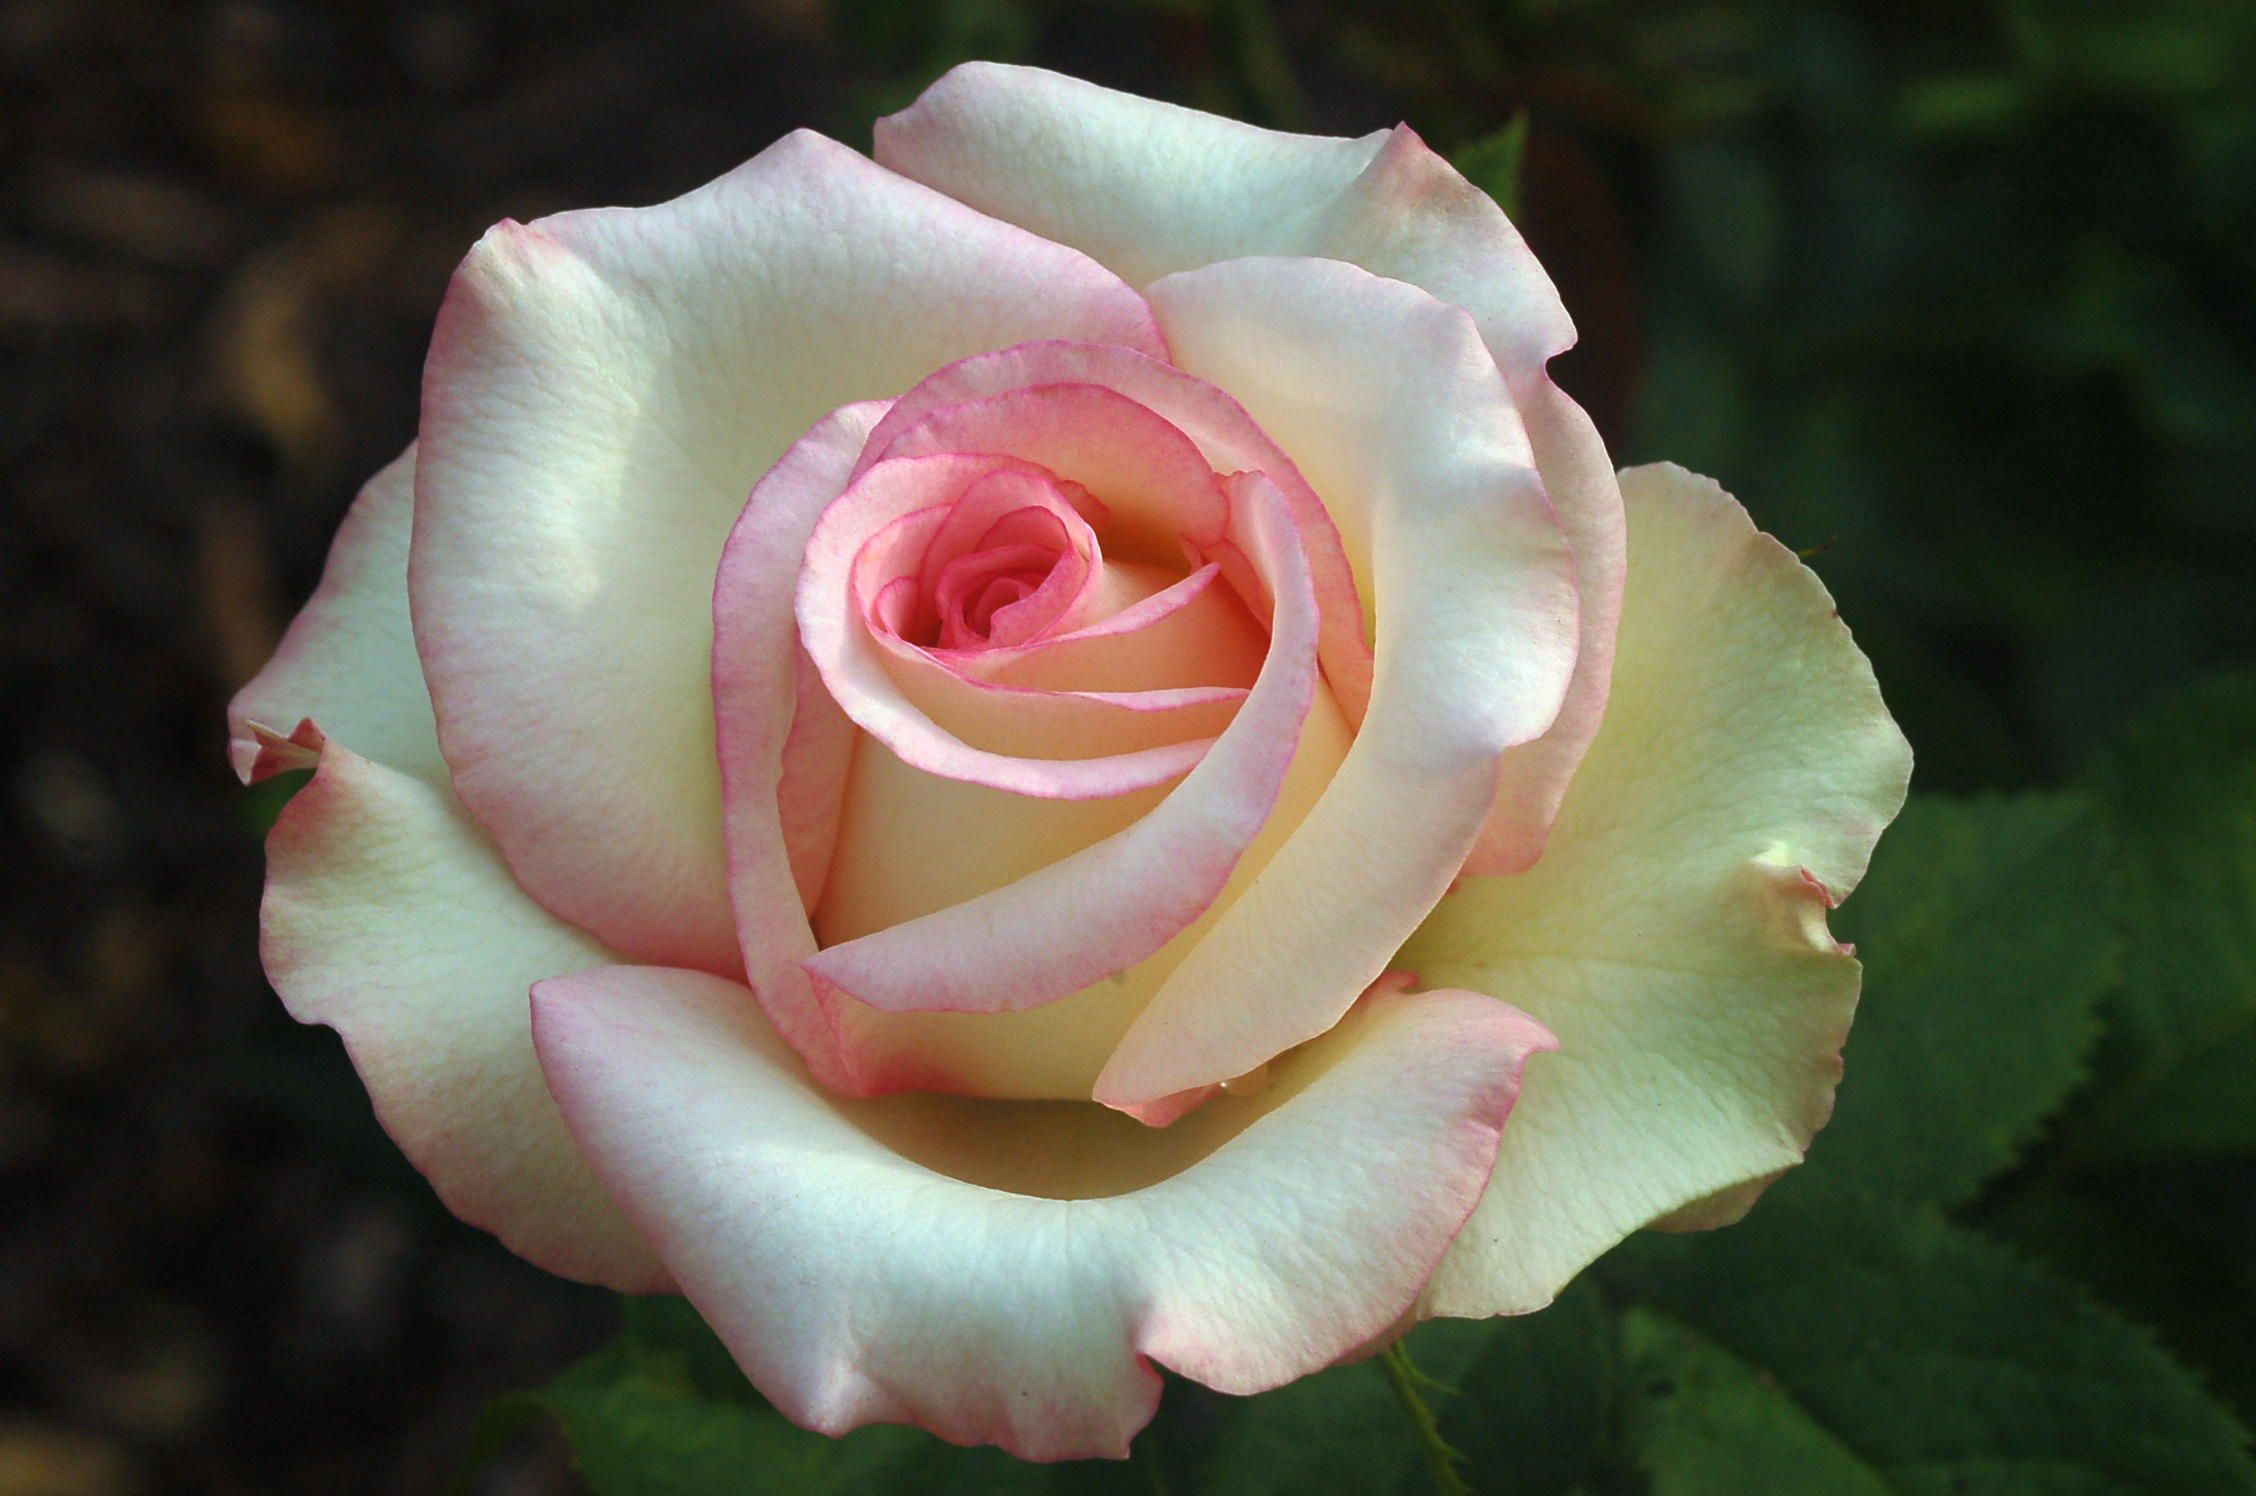 Weeks 'Moonstone' hybrid tea rose. Beautiful rose! Saw this rose at Burns Nursery & loved it! It grows 4-6 ft high and 2-3 ft wide. They are repeat bloomers with a slight fragrance. The blooms average close to 5 inches.